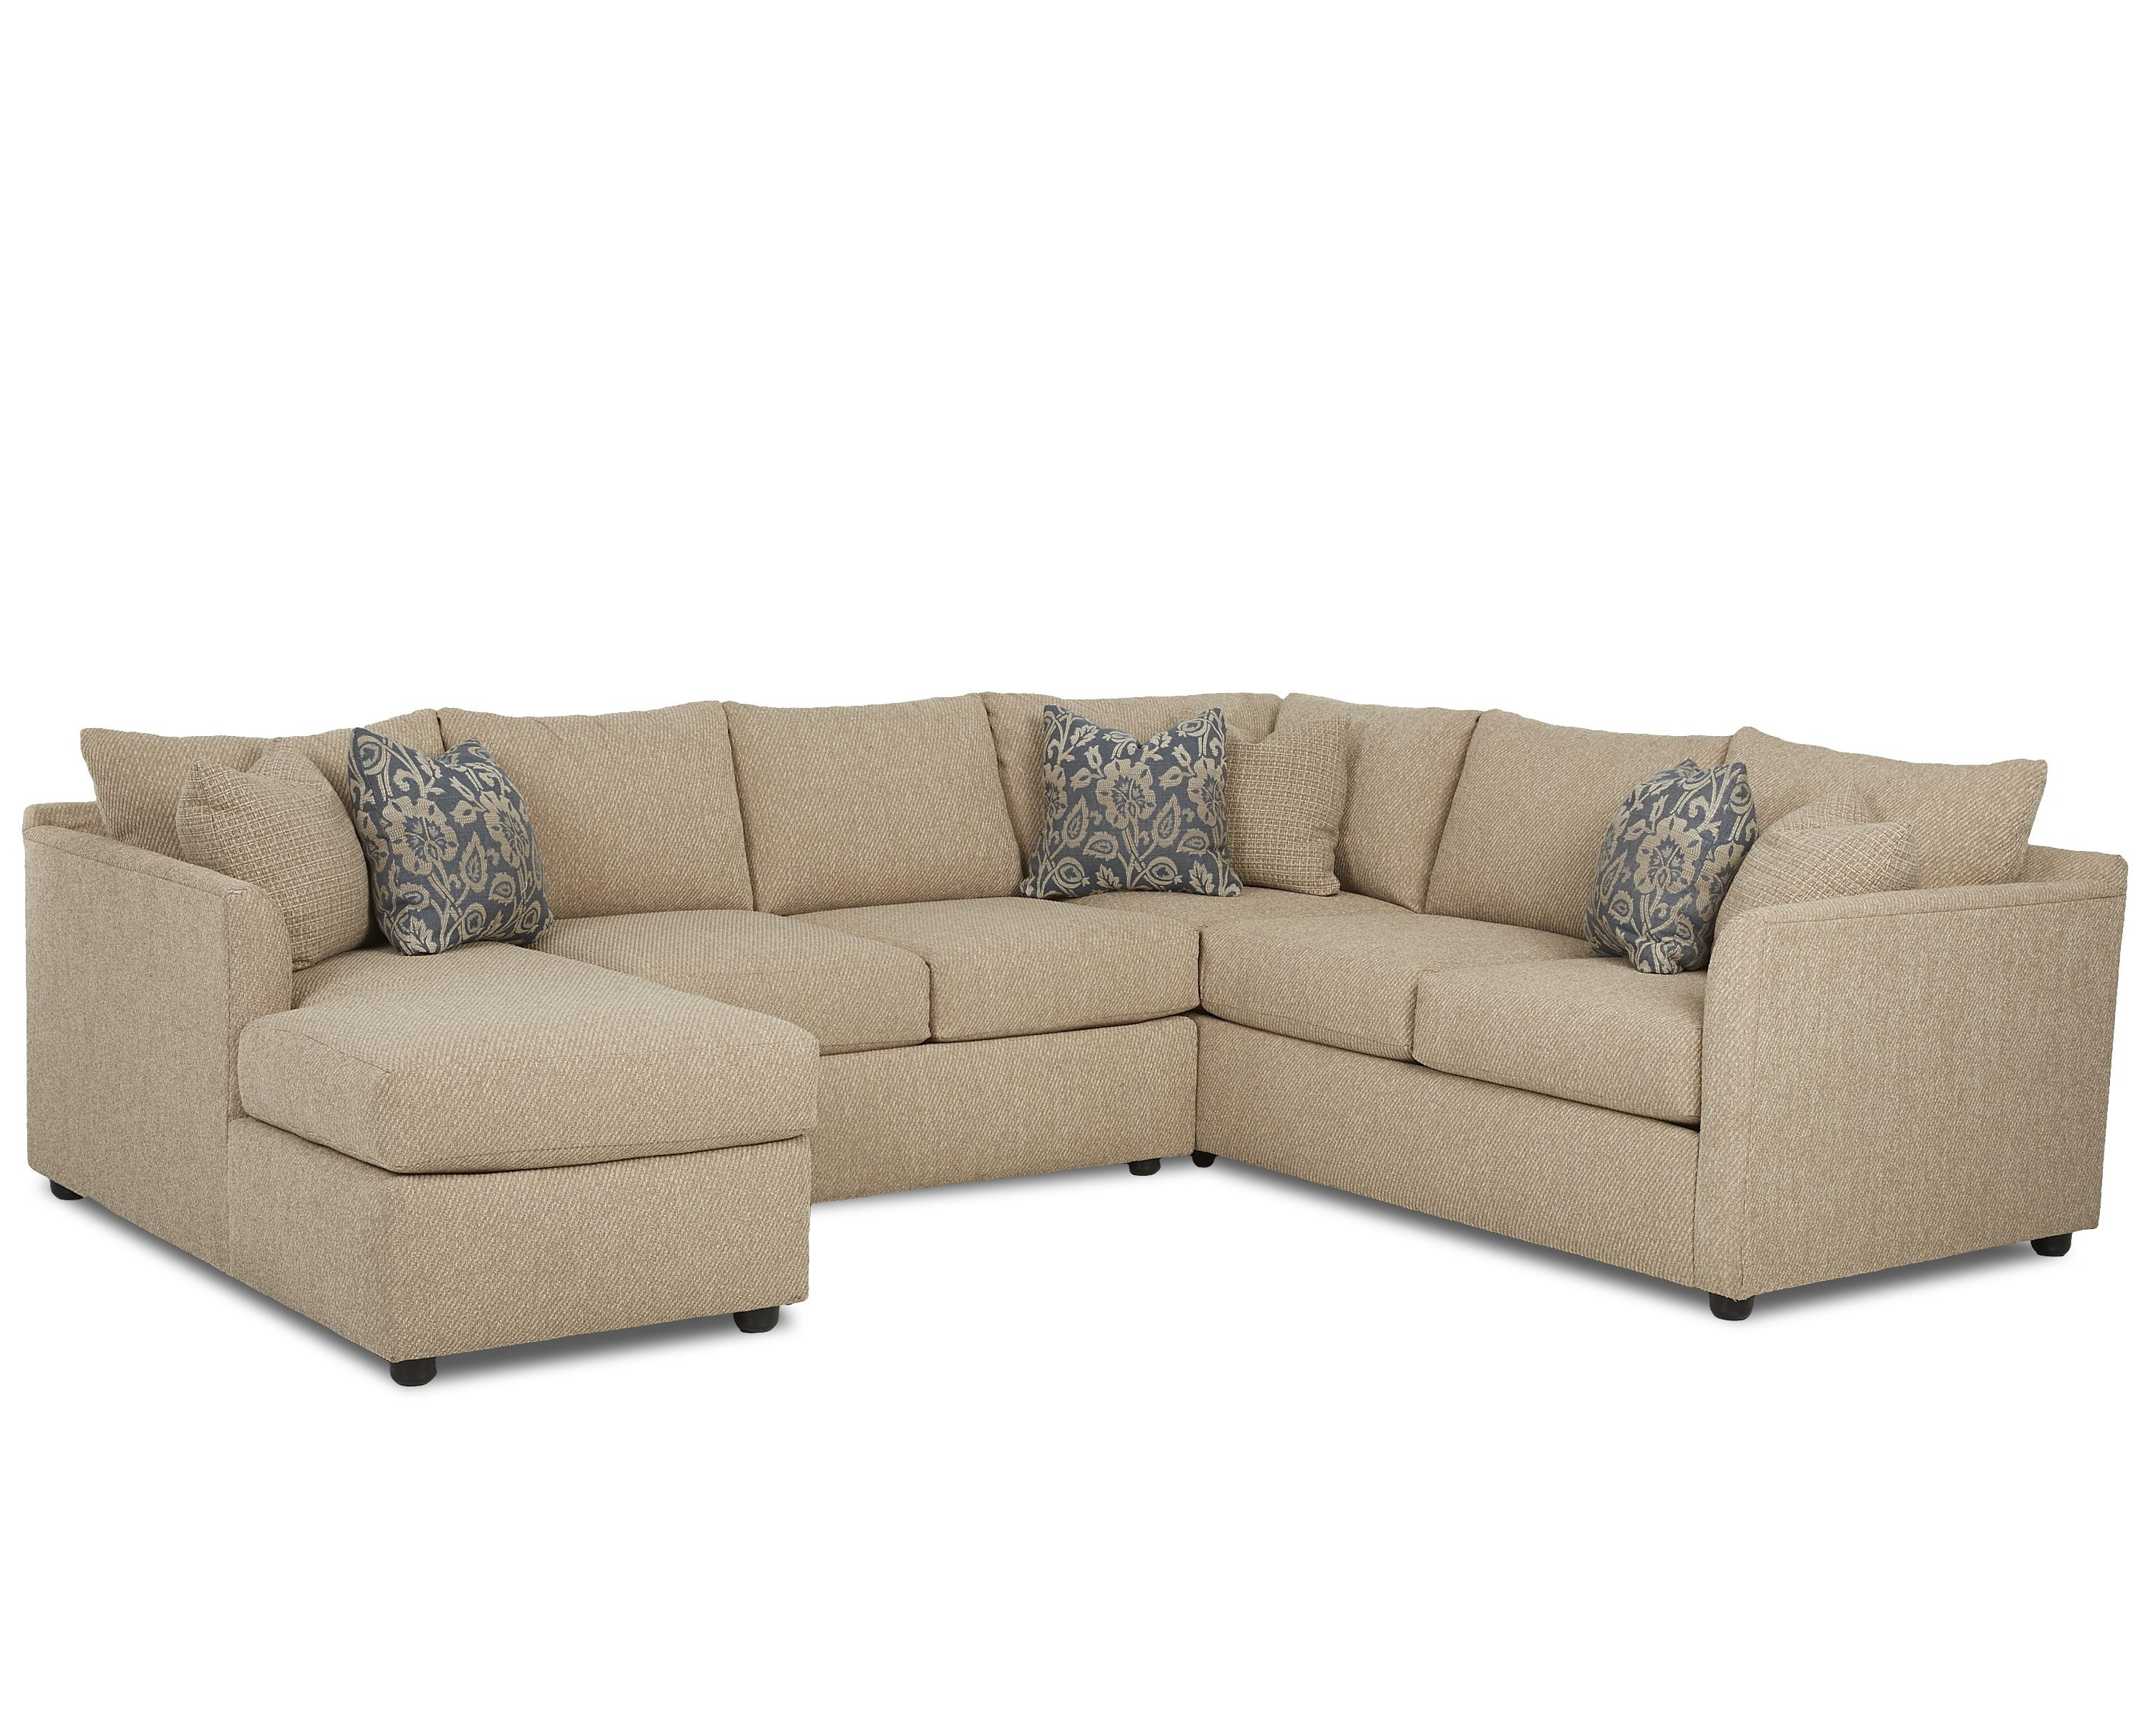 Sectional Sofas At Atlanta In Most Popular Transitional Sectional Sofa With Chaisetrisha Yearwood Home (View 13 of 15)